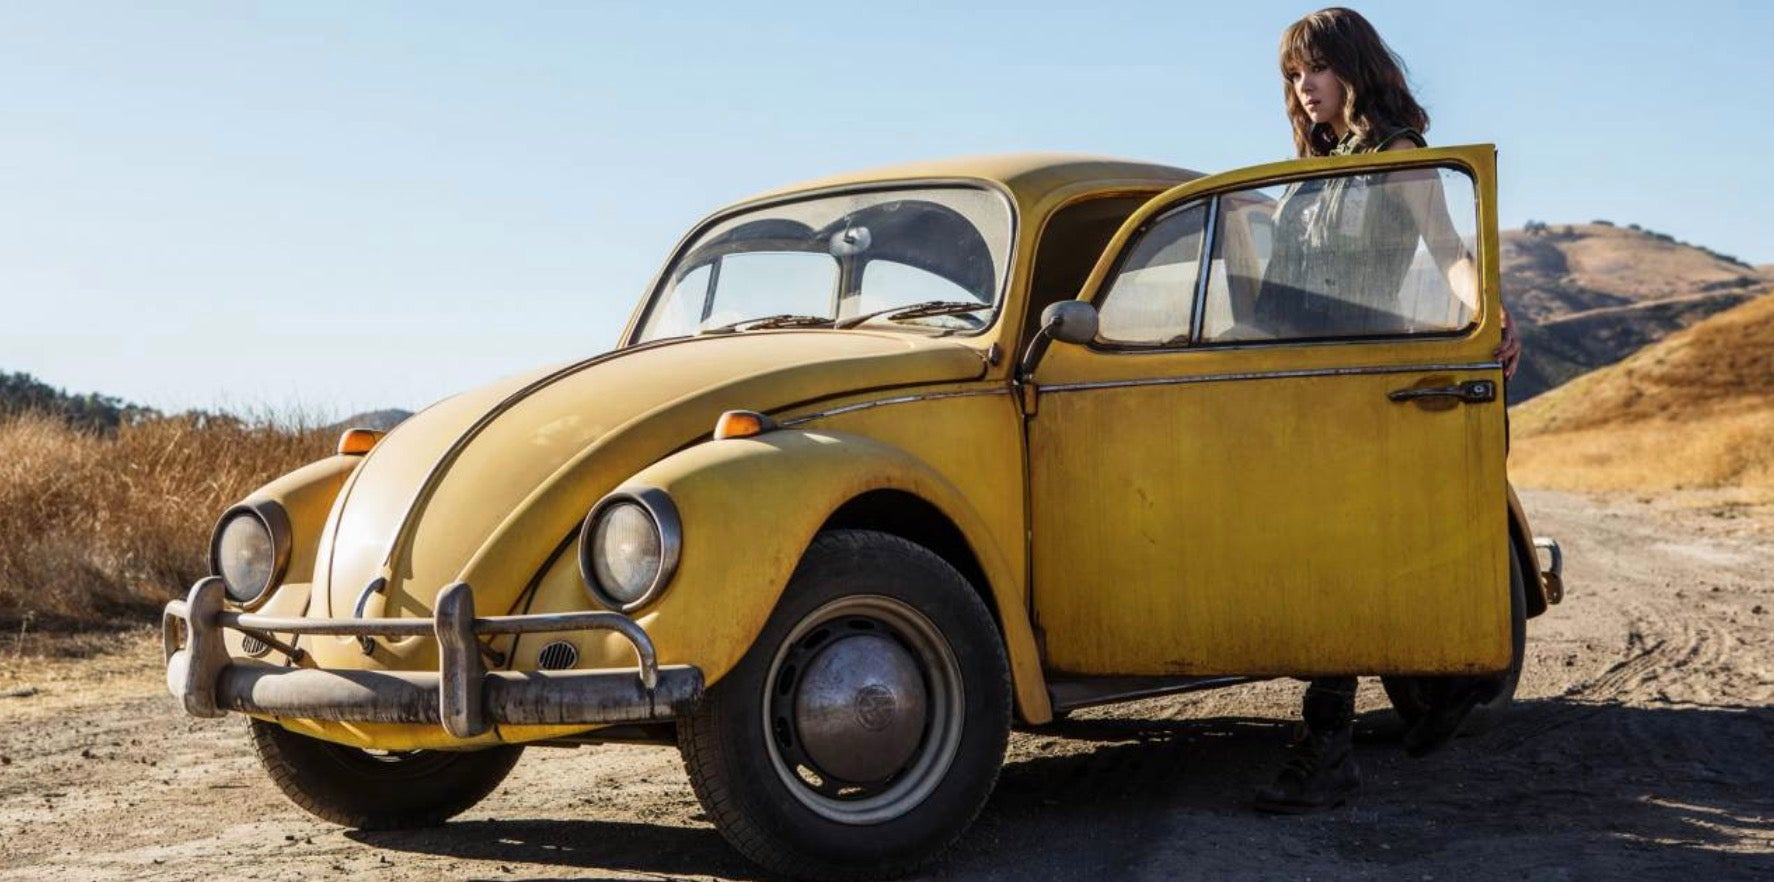 The Bumblebee Preview Has A Lot Of Heart But Keeps The Action Of Michael Bay's Transformers